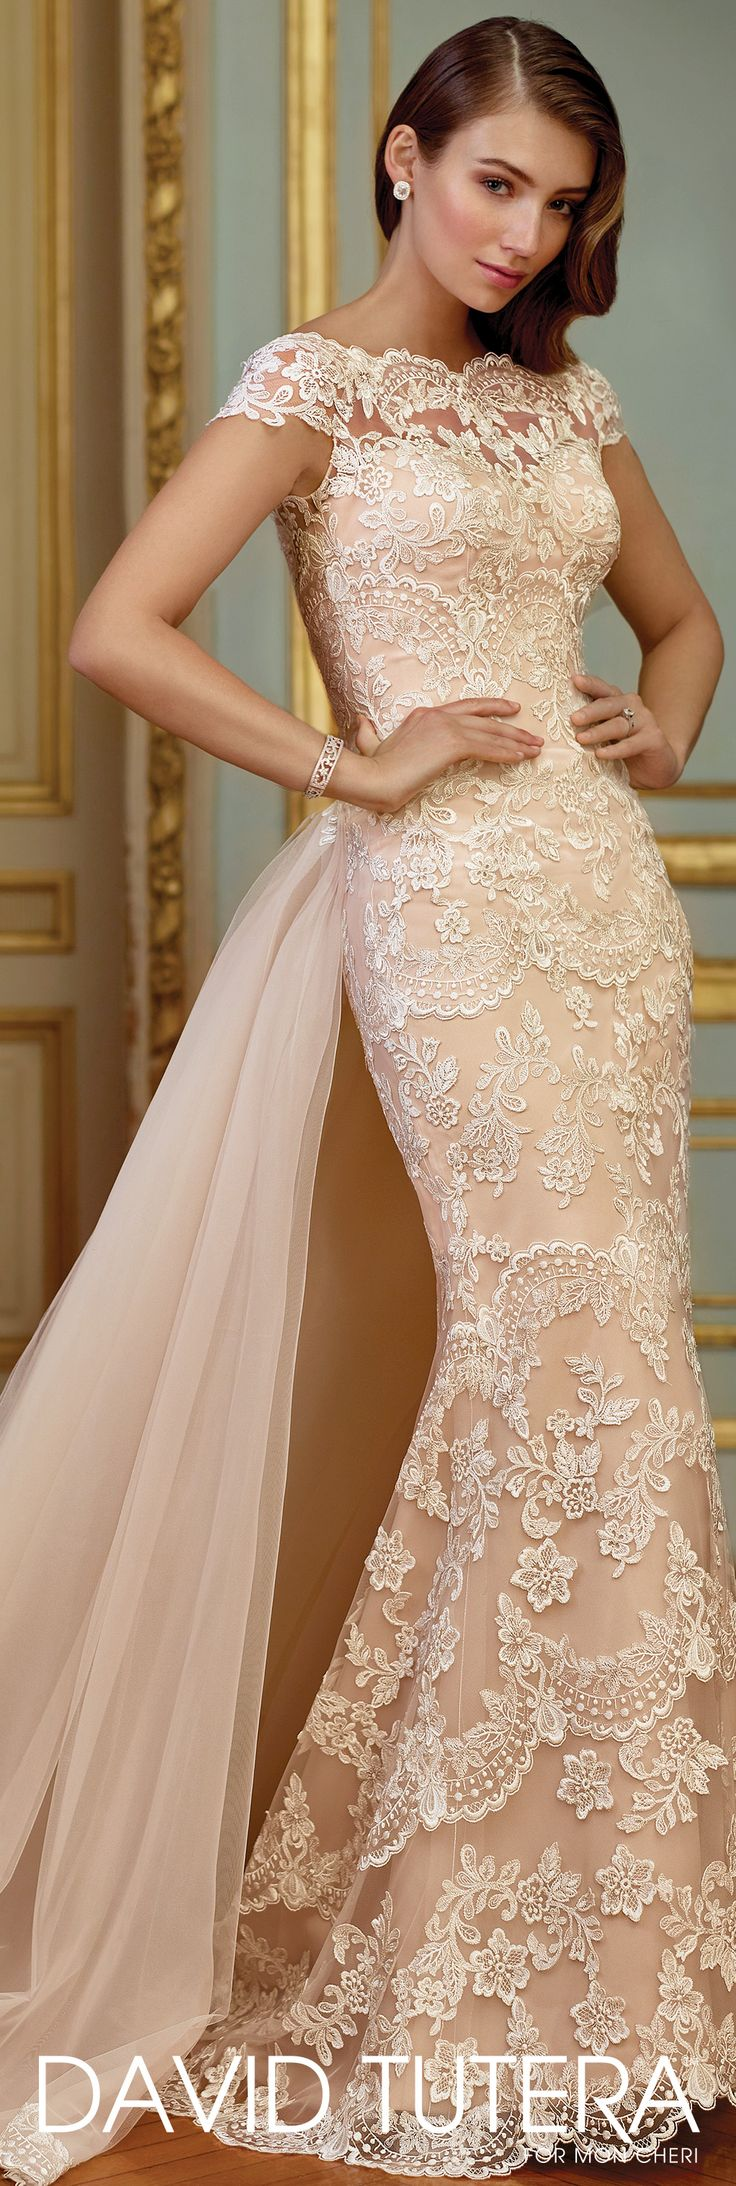 David Tutera for Mon Cheri Spring 2017 Collection - Style No. 117291 Zerrin - lace fit and flare wedding dress with cap sleeves and illusion scalloped lace bateau neckline